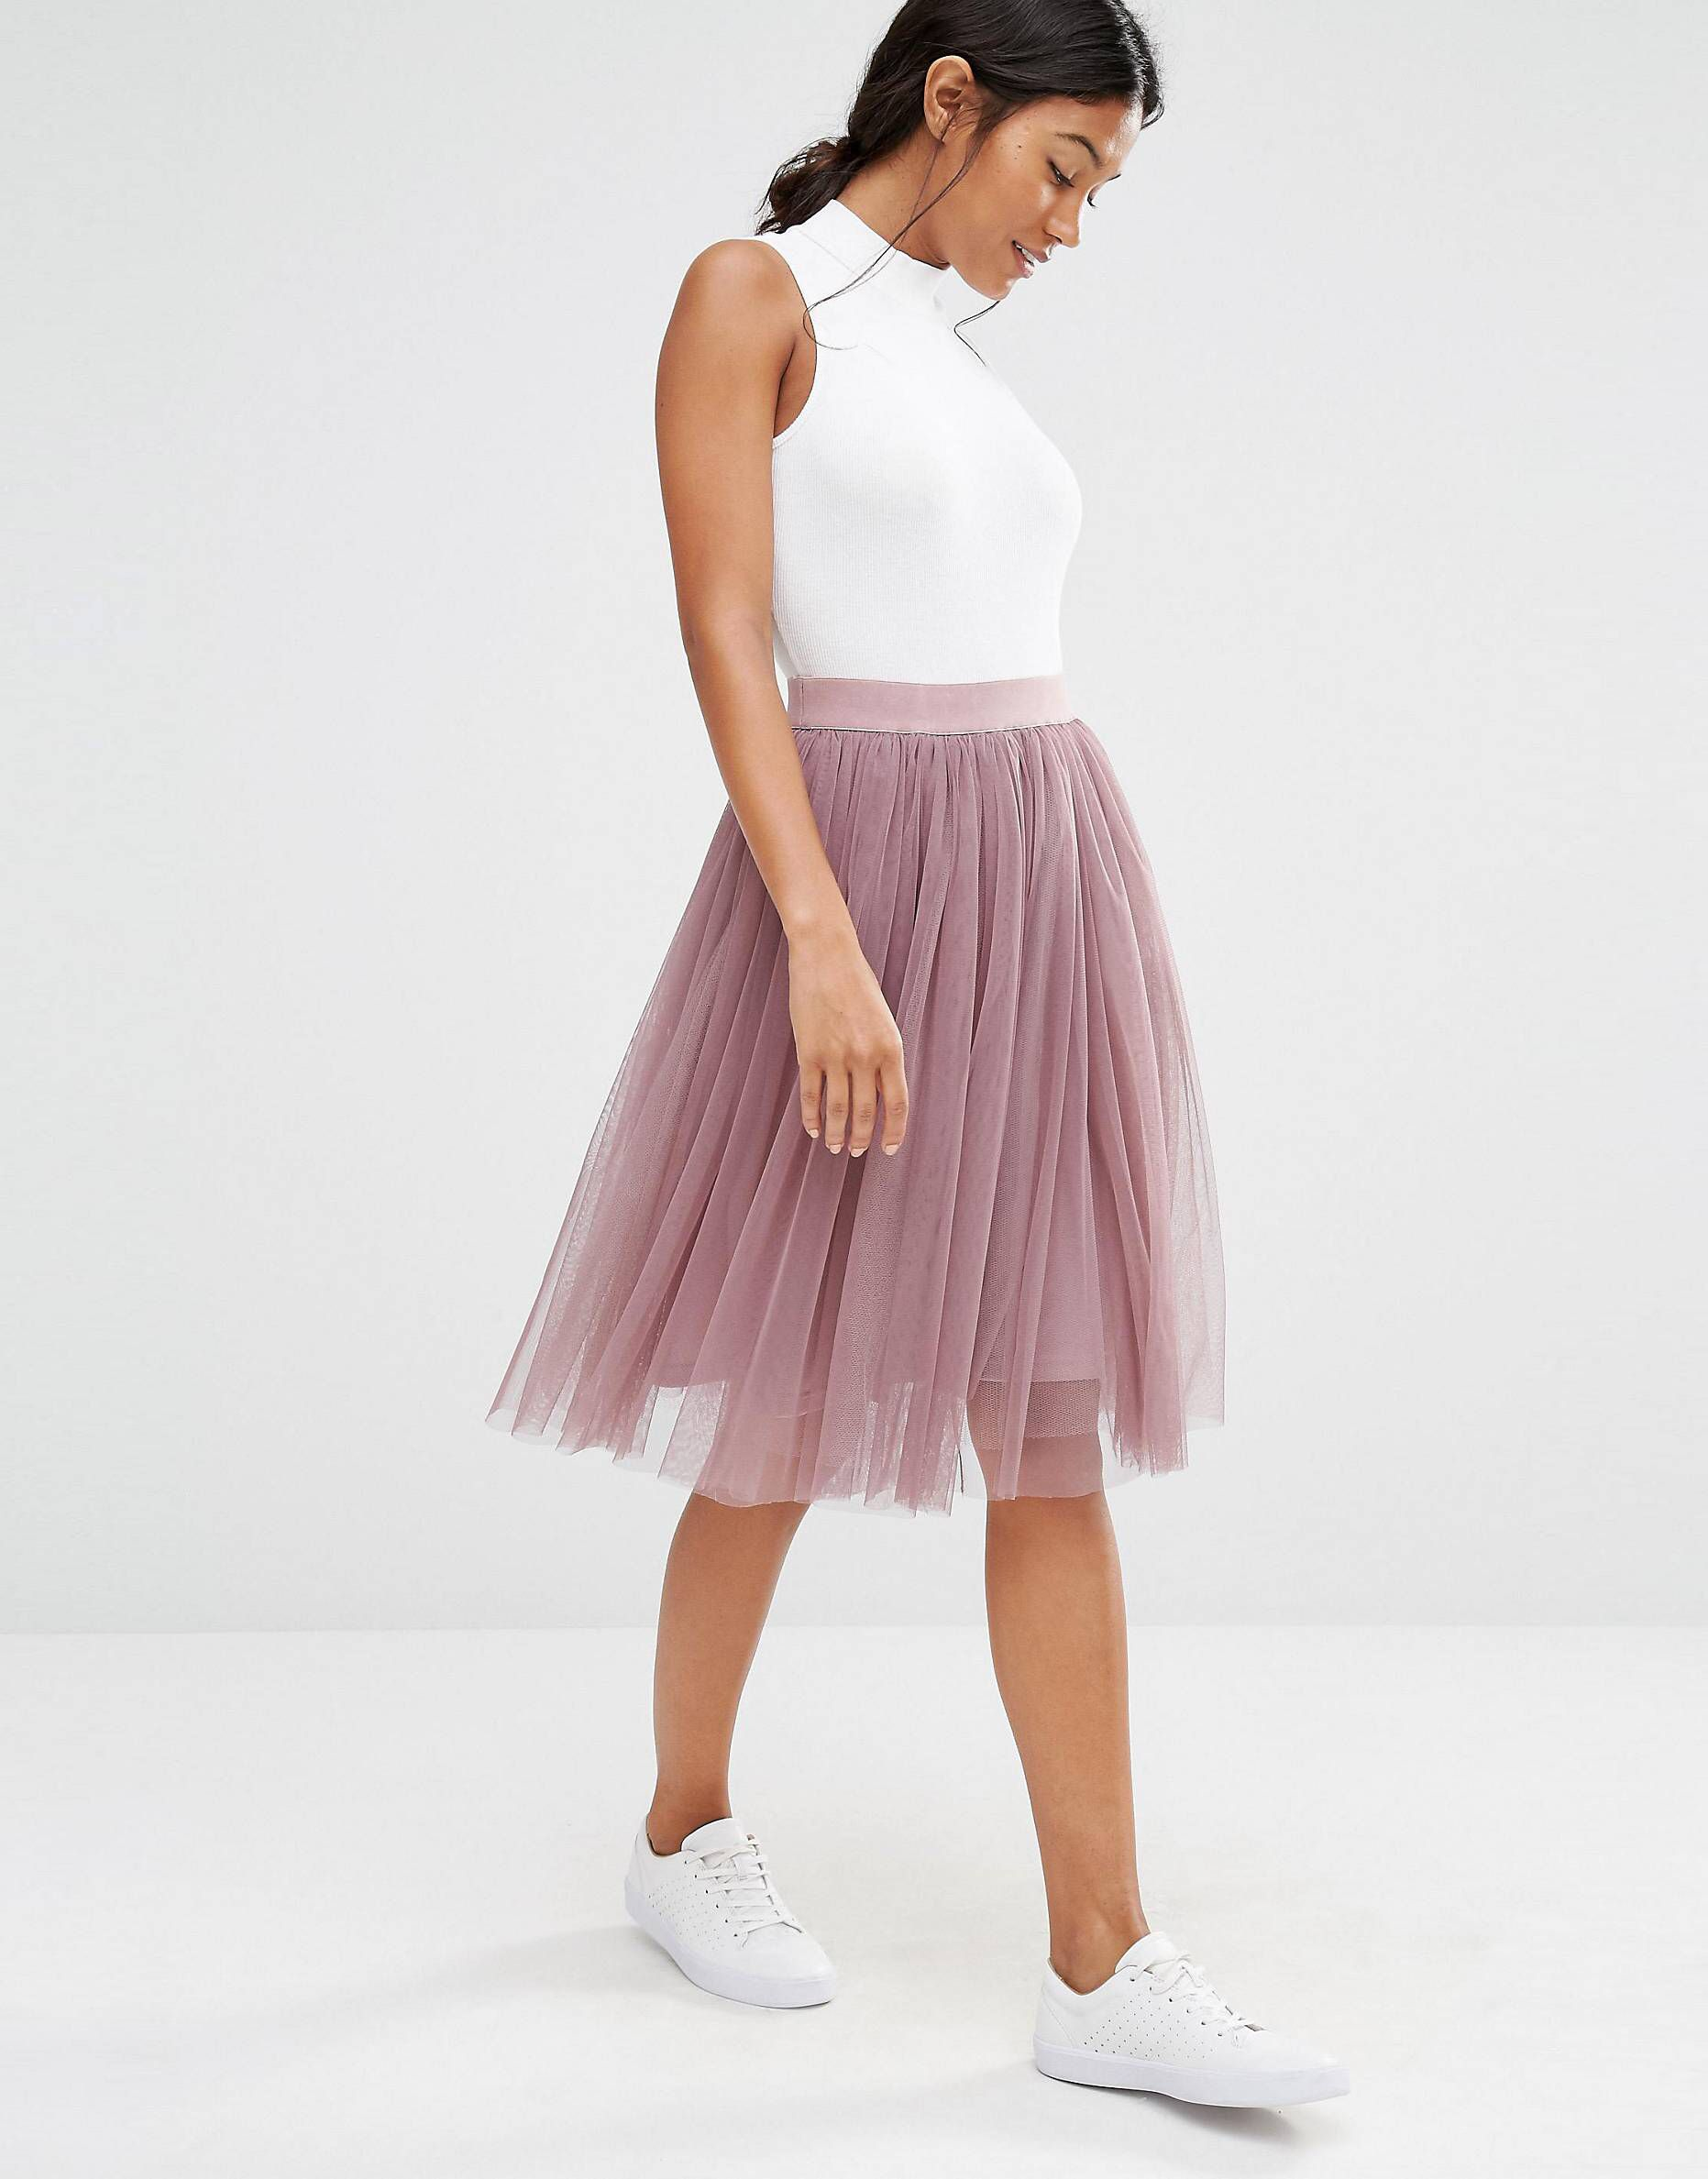 Boohoo Tiered Tulle Skirt At Asos Com Tullrock Outfits Tullrock Kleidung